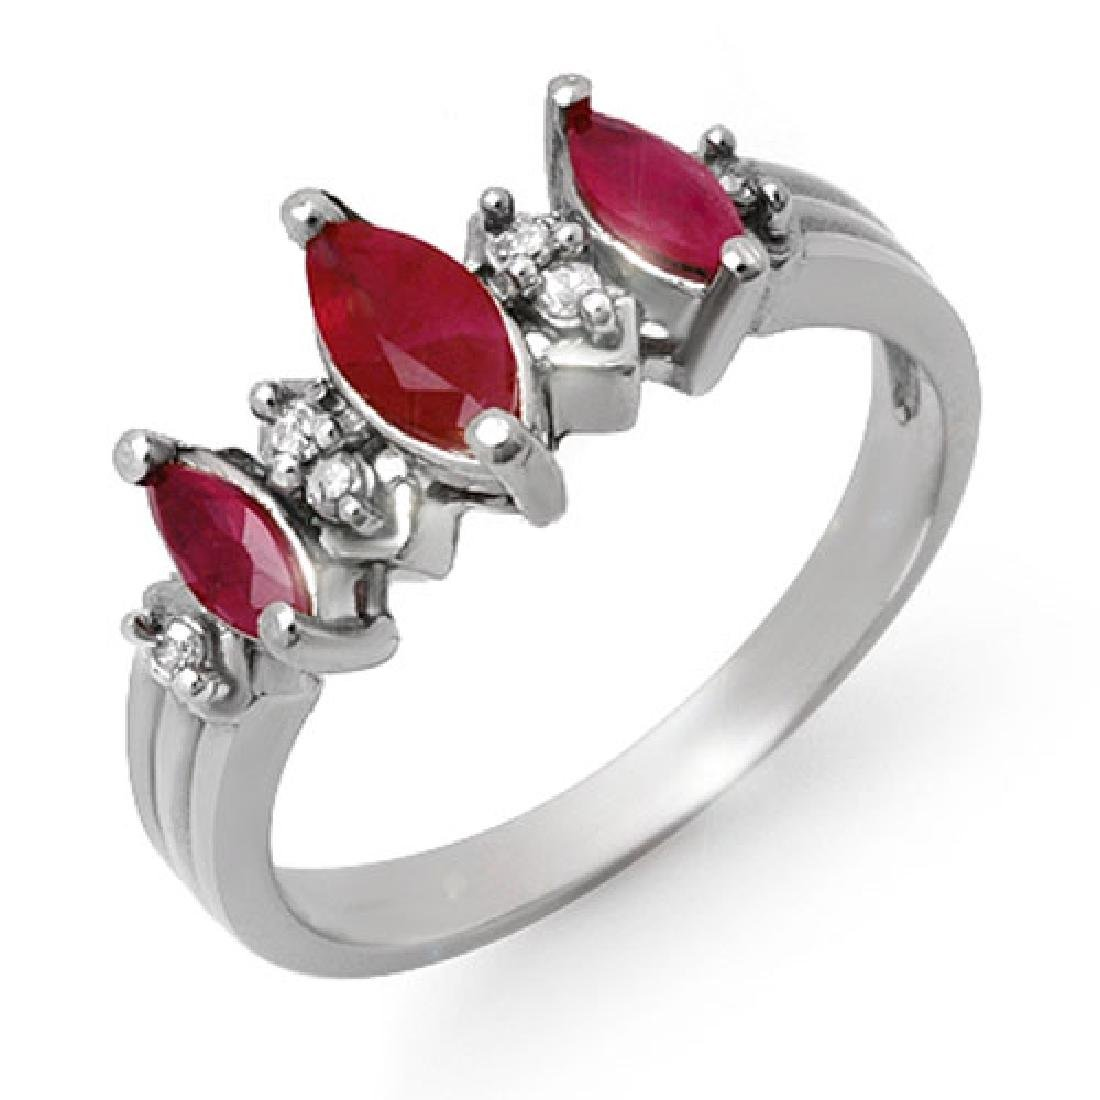 1.0 CTW Ruby & Diamond Ring 10K White Gold